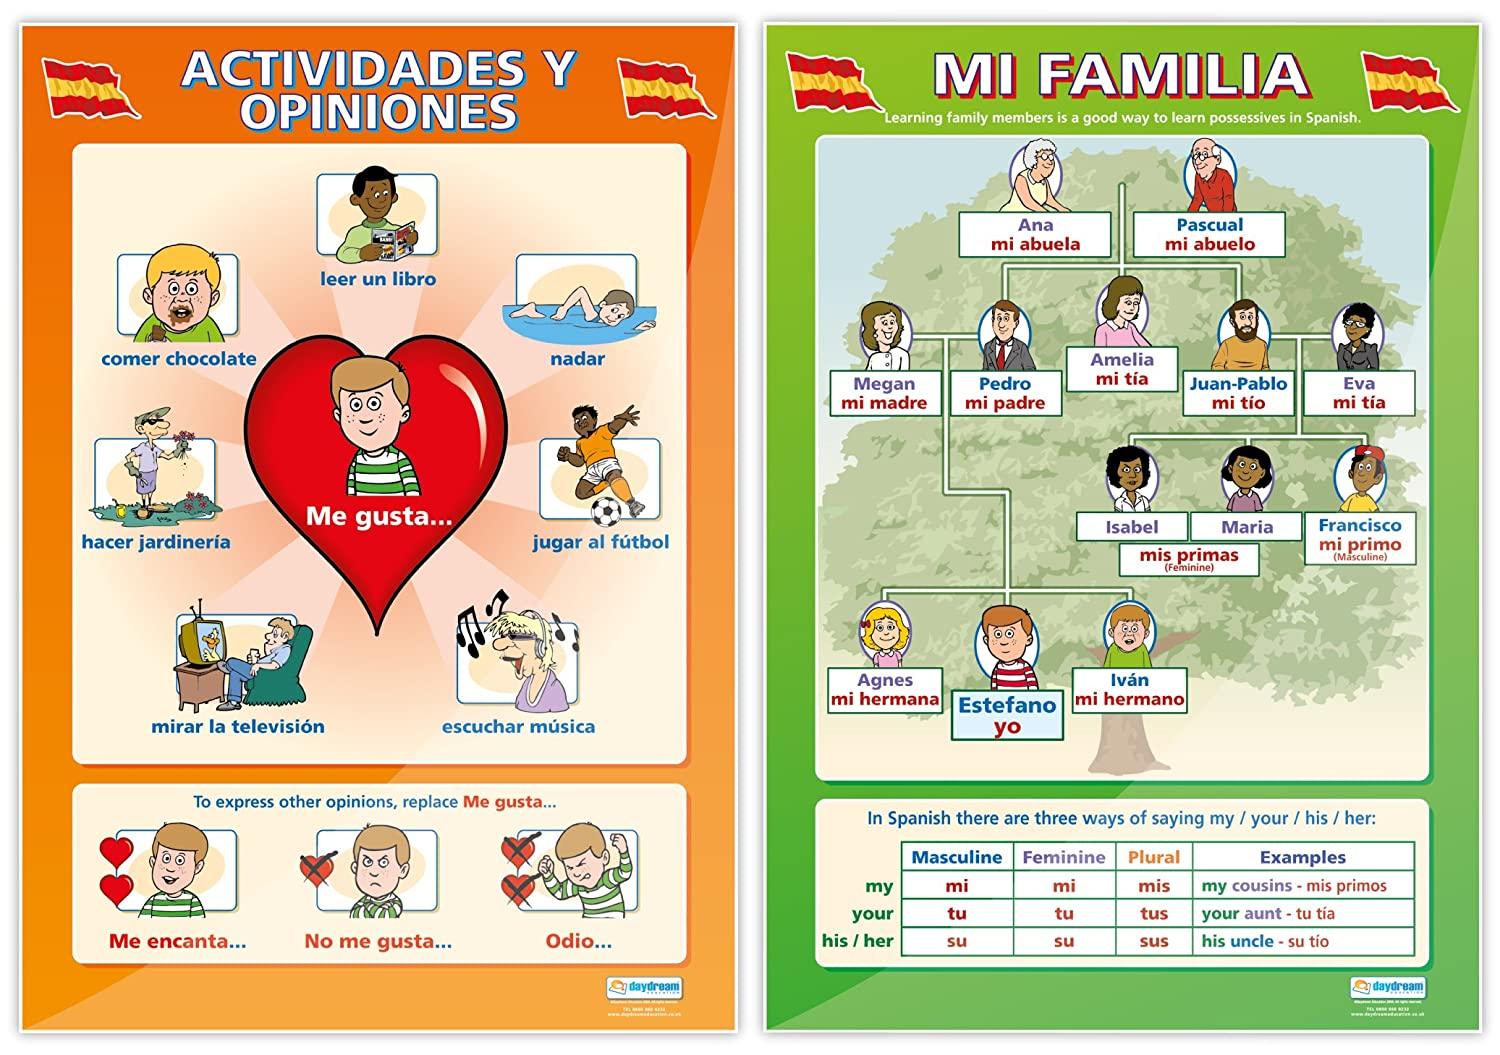 Amazon.com : Spanish Basics - Set of 8 Spanish Posters | Classroom Posters for Spanish | Laminated Gloss Paper measuring 33